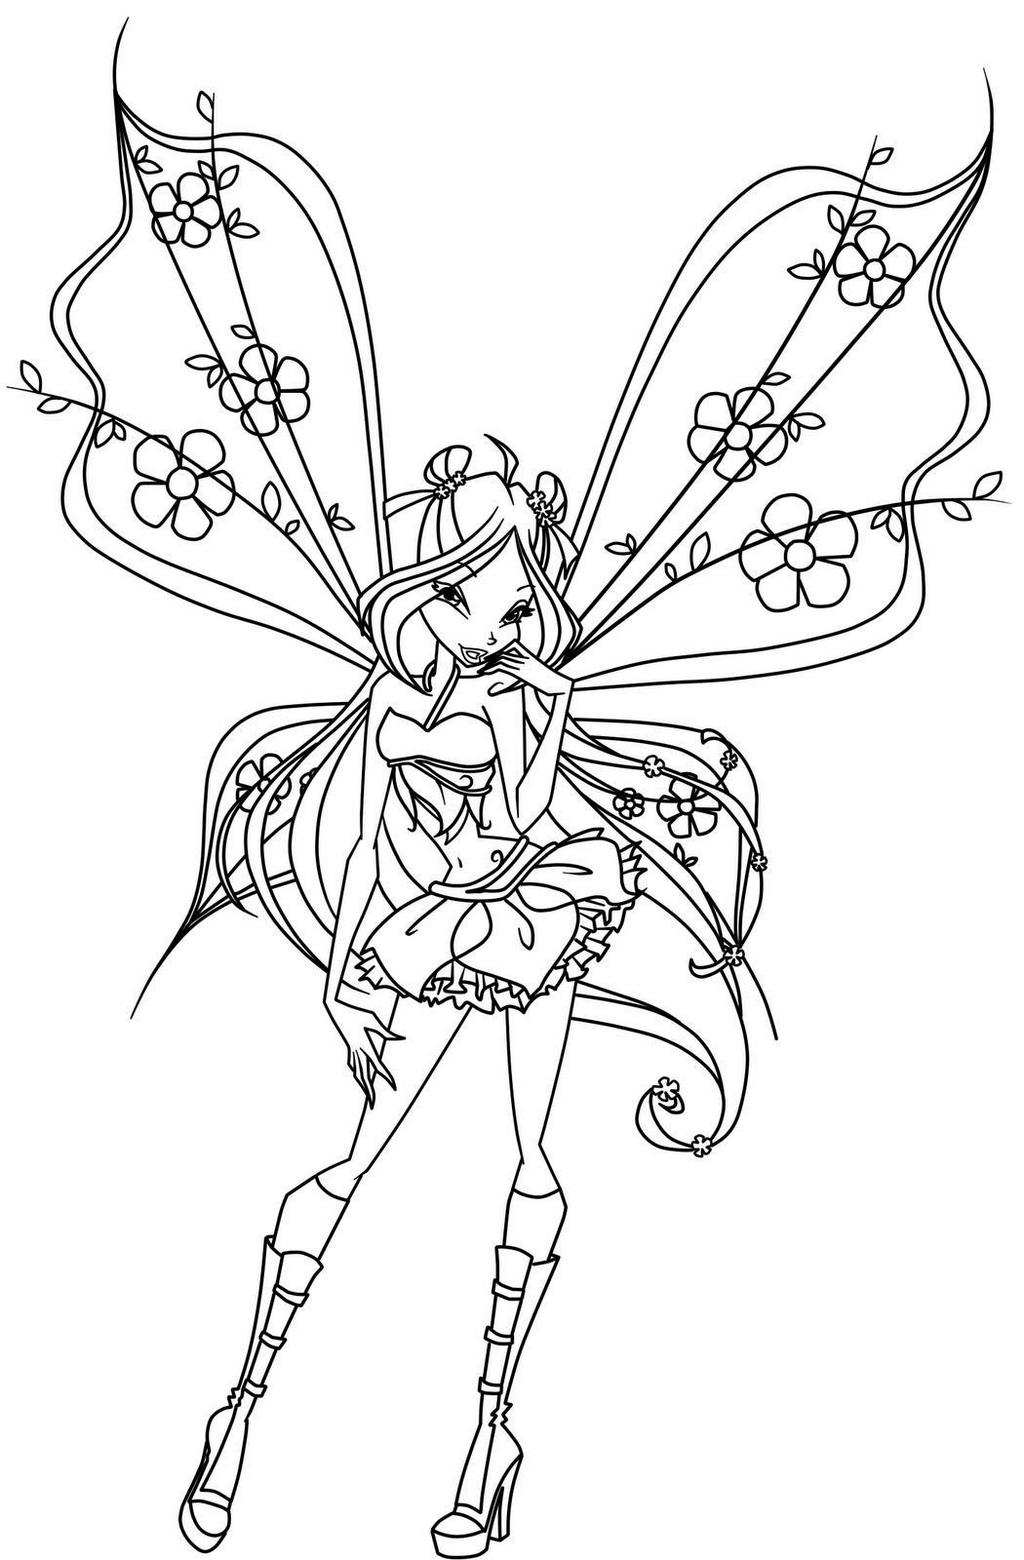 Fantastic Flora the Winx Club Coloring Page